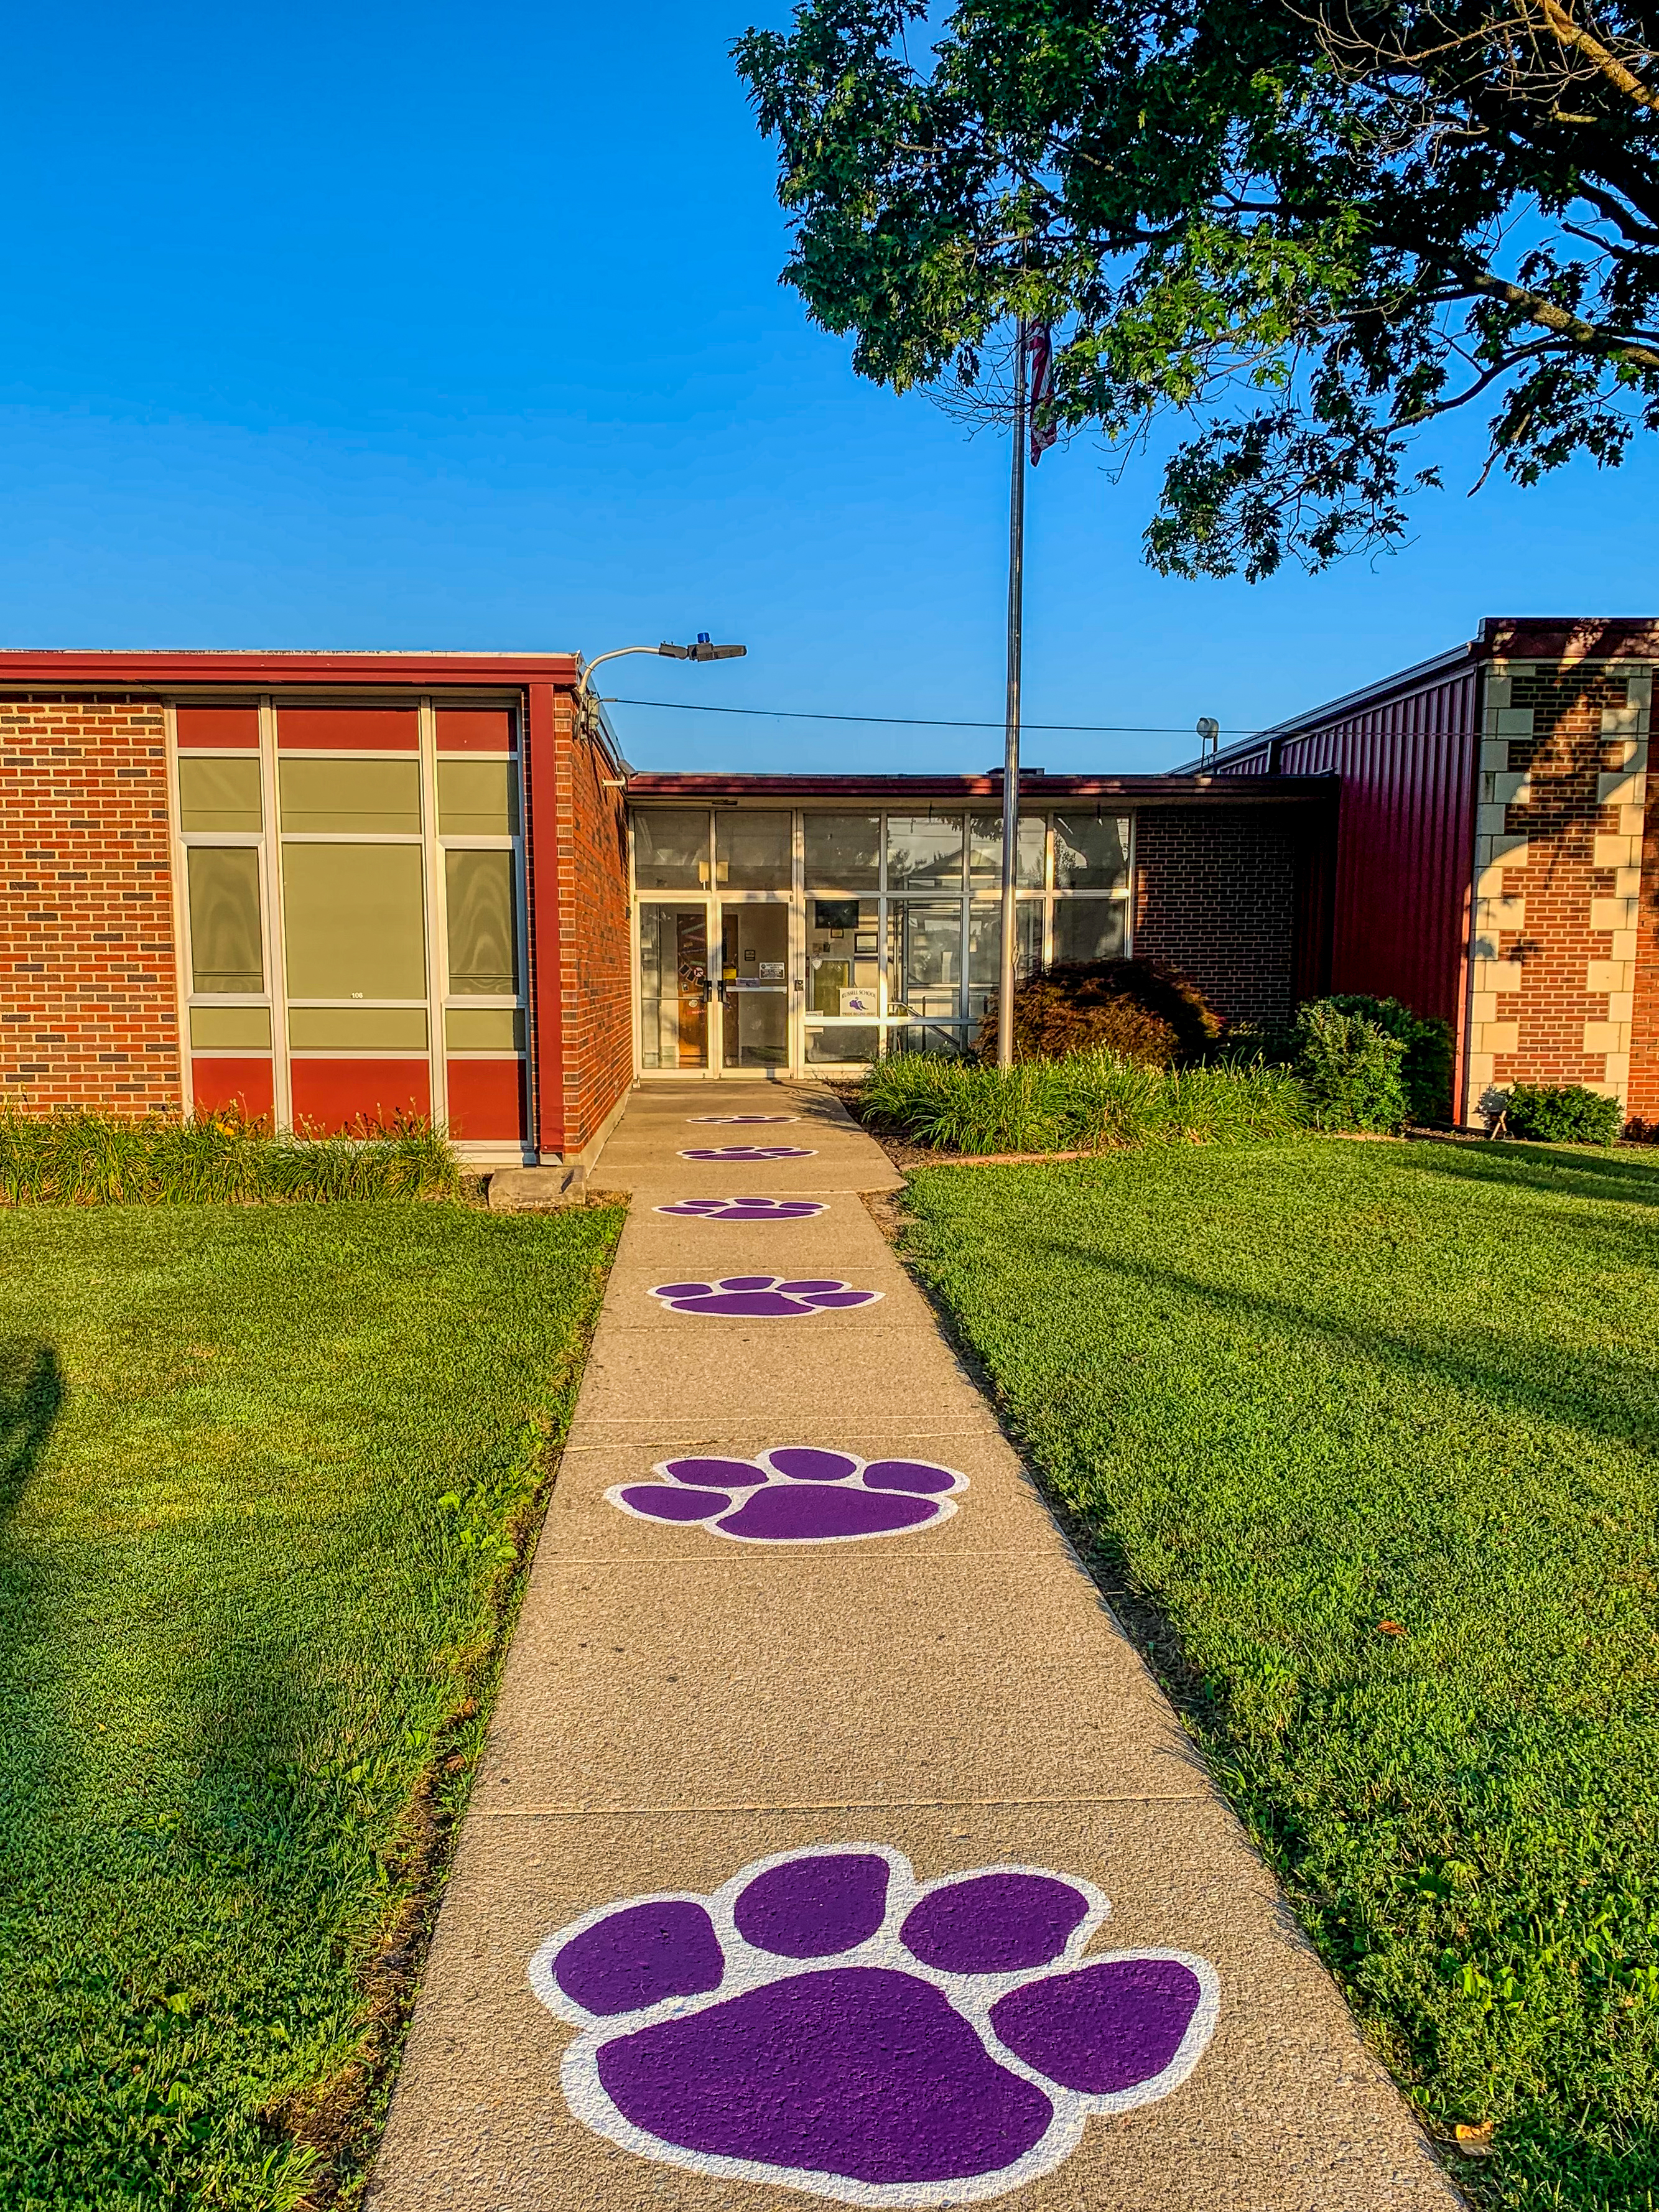 Image of front walk to Russell school with panther paws.